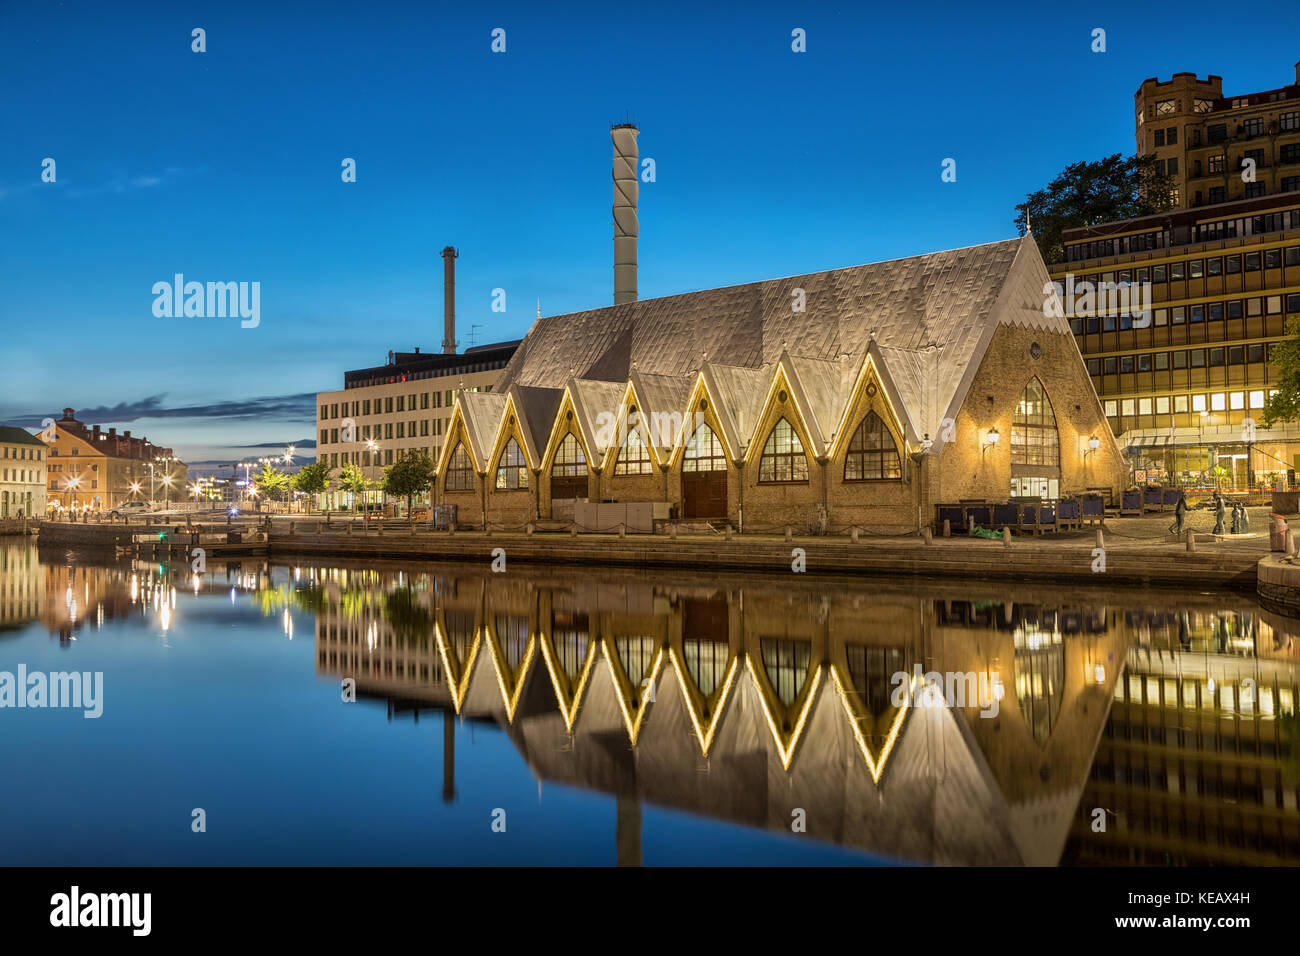 Feskekorka (Fish church) is an indoor fish market in Gothenburg, Sweden, which got its name from the building's - Stock Image